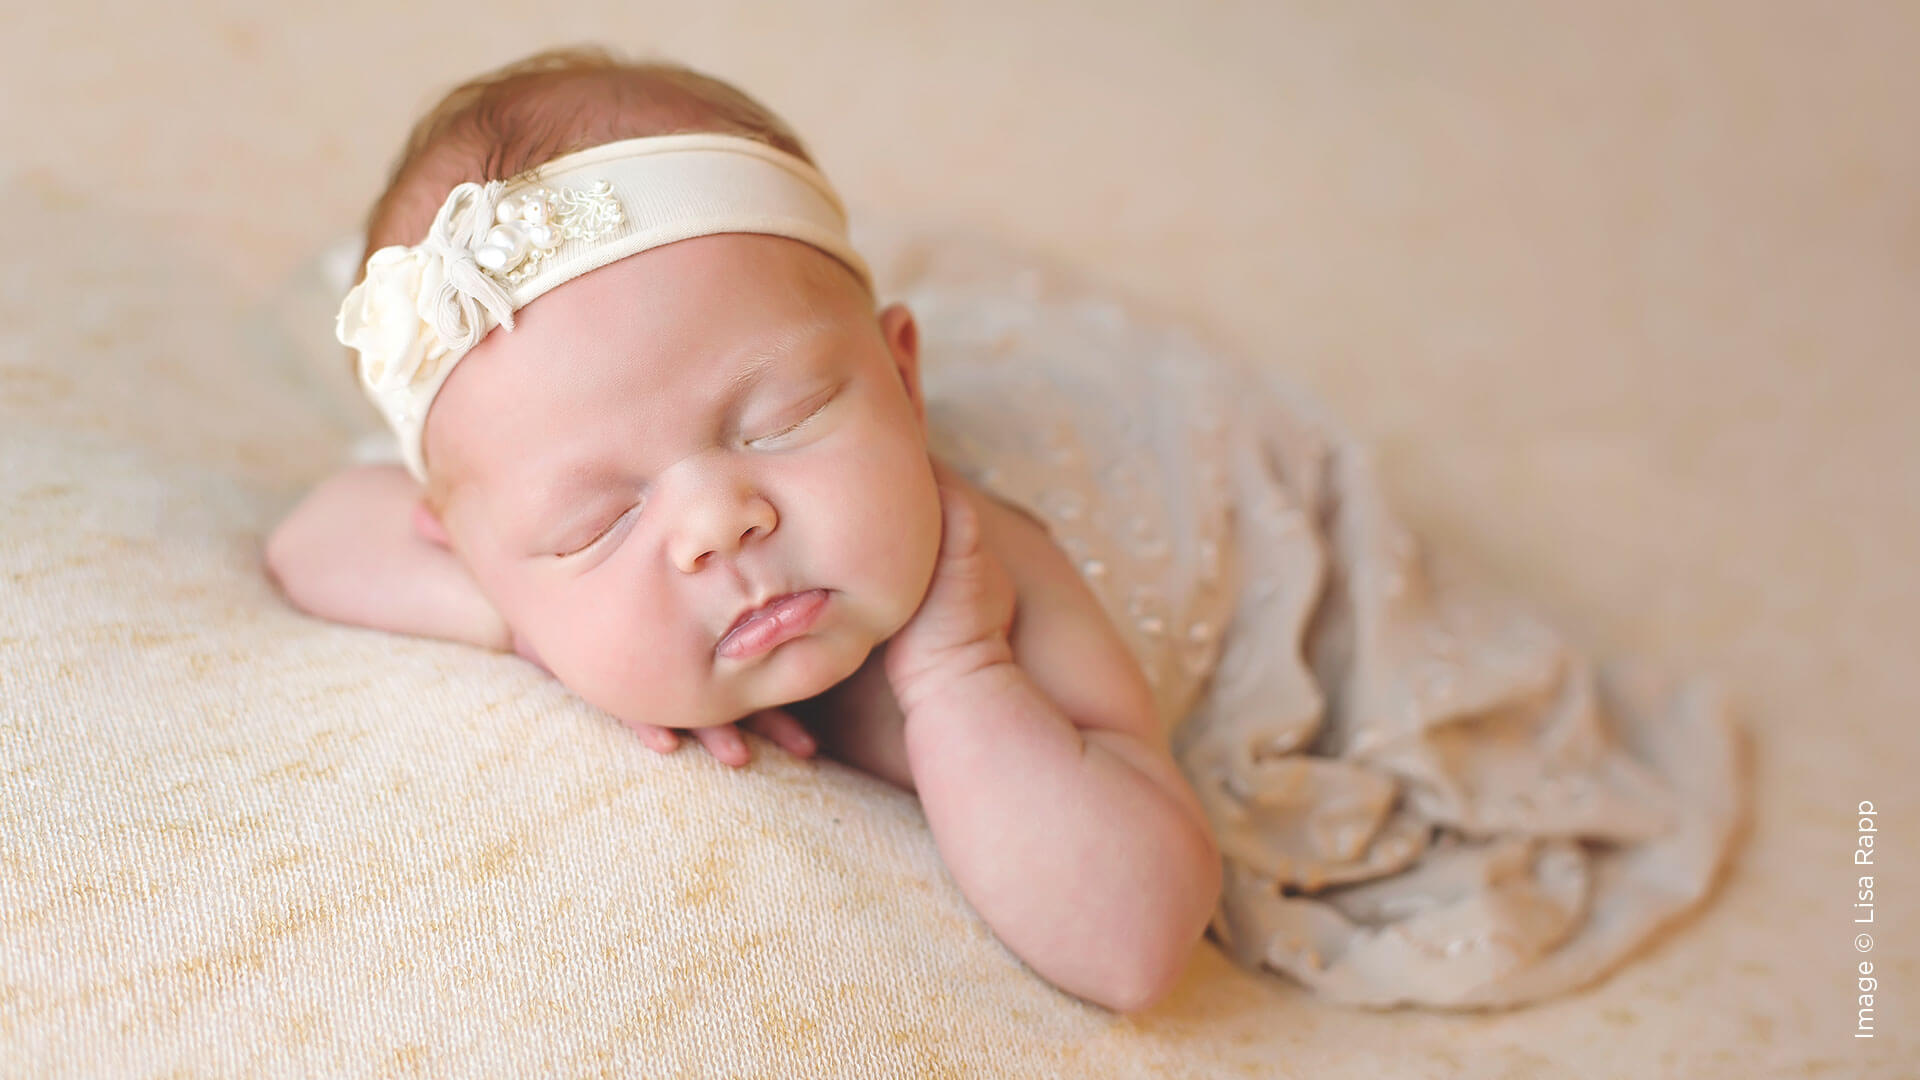 Newborn Photography: Starting From Scratch